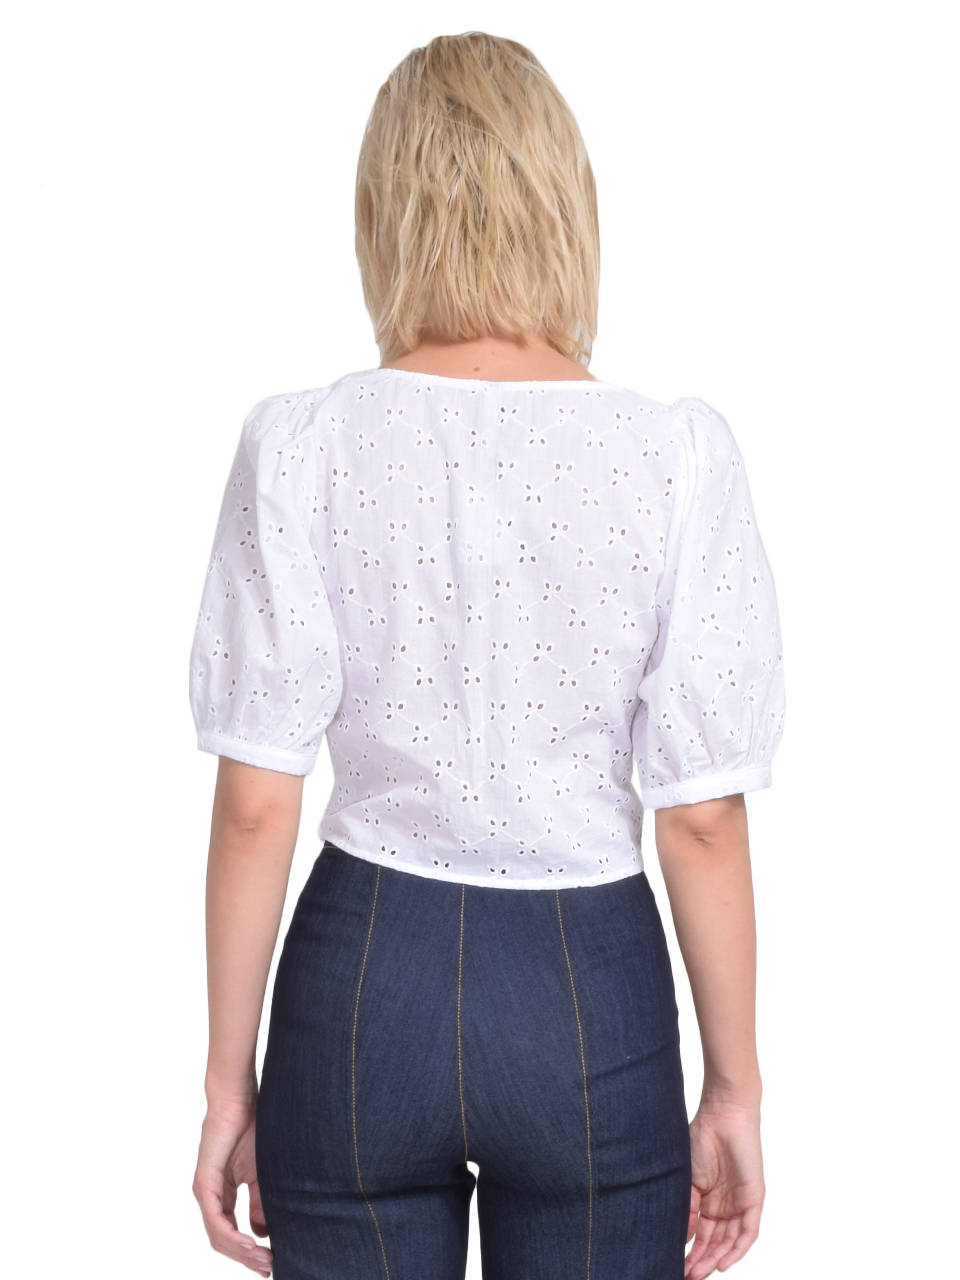 Rachel Pally Eyelet Kimmie Top in White Back View